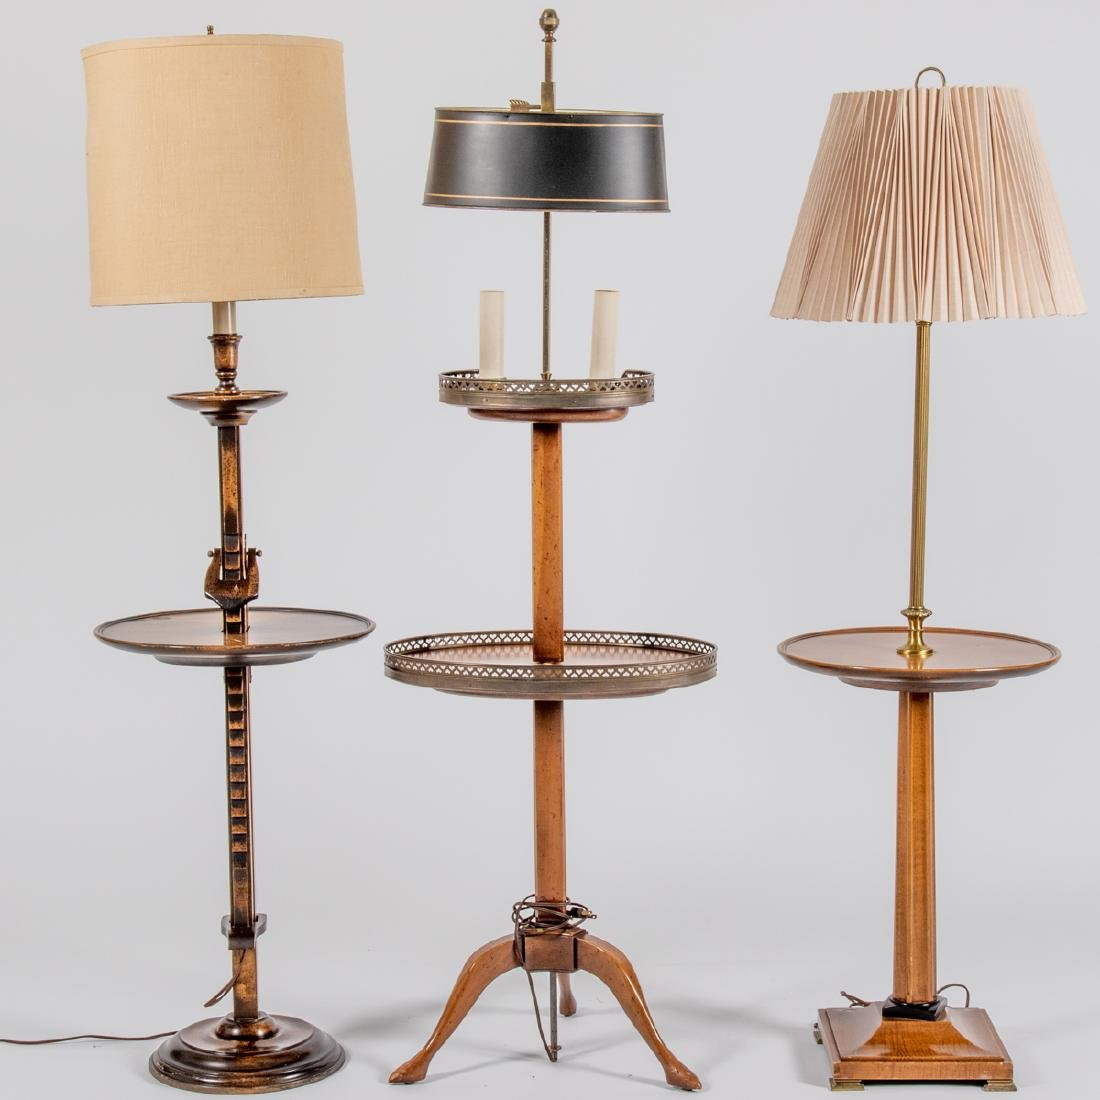 A Group of Three Brass and Wood Floor Lamps, 20th